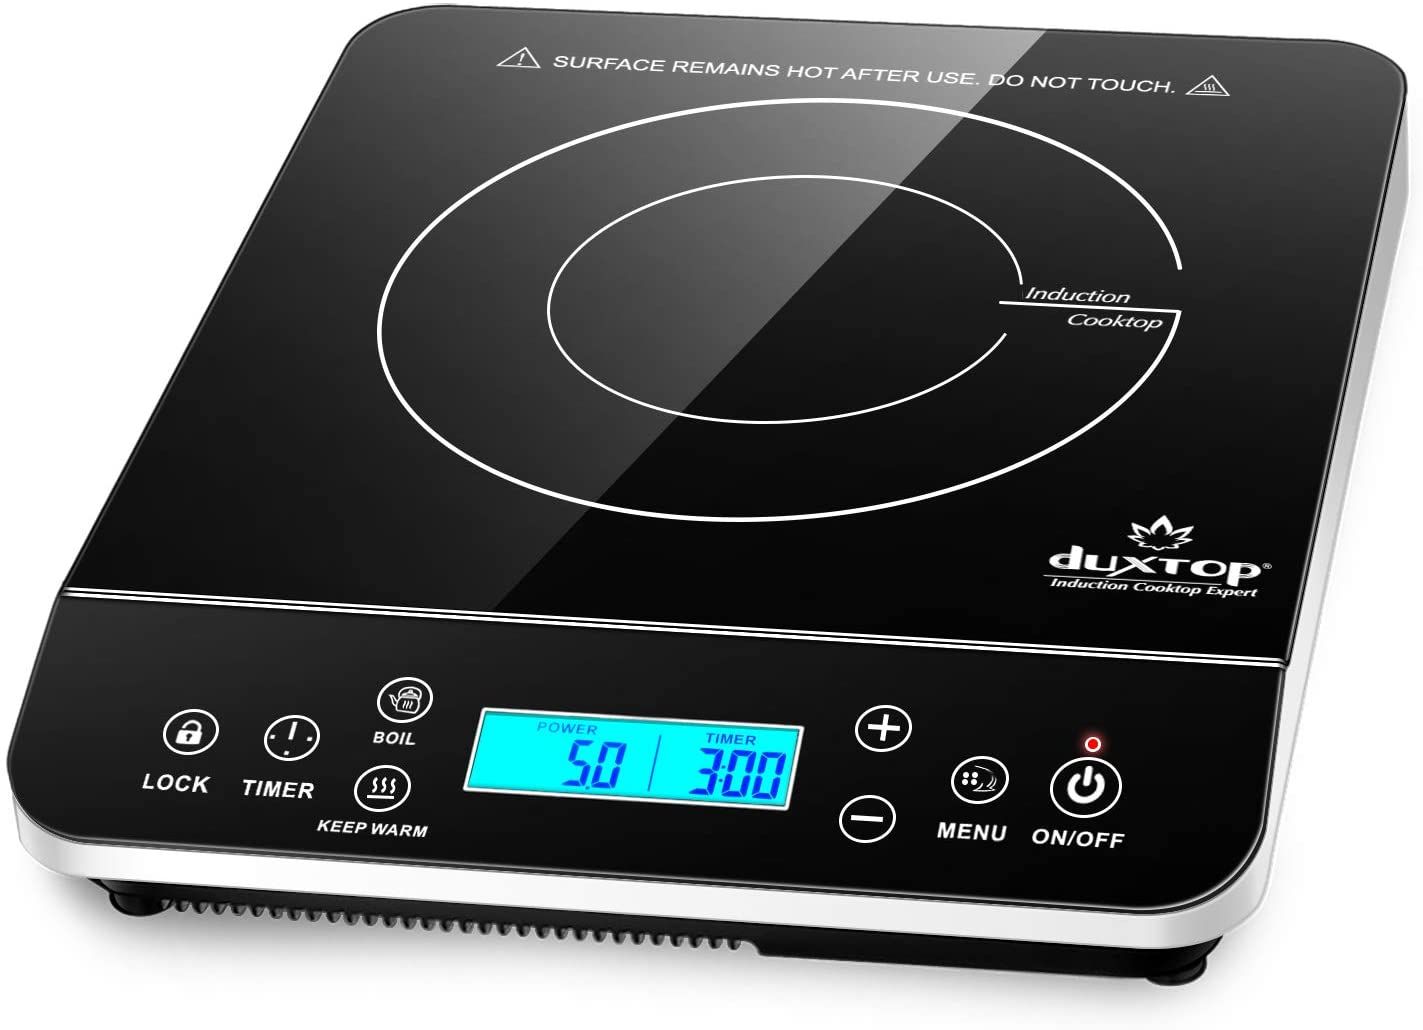 Duxtop 9600LS Portable Induction Cooktop- Best Kitchen Gadgets